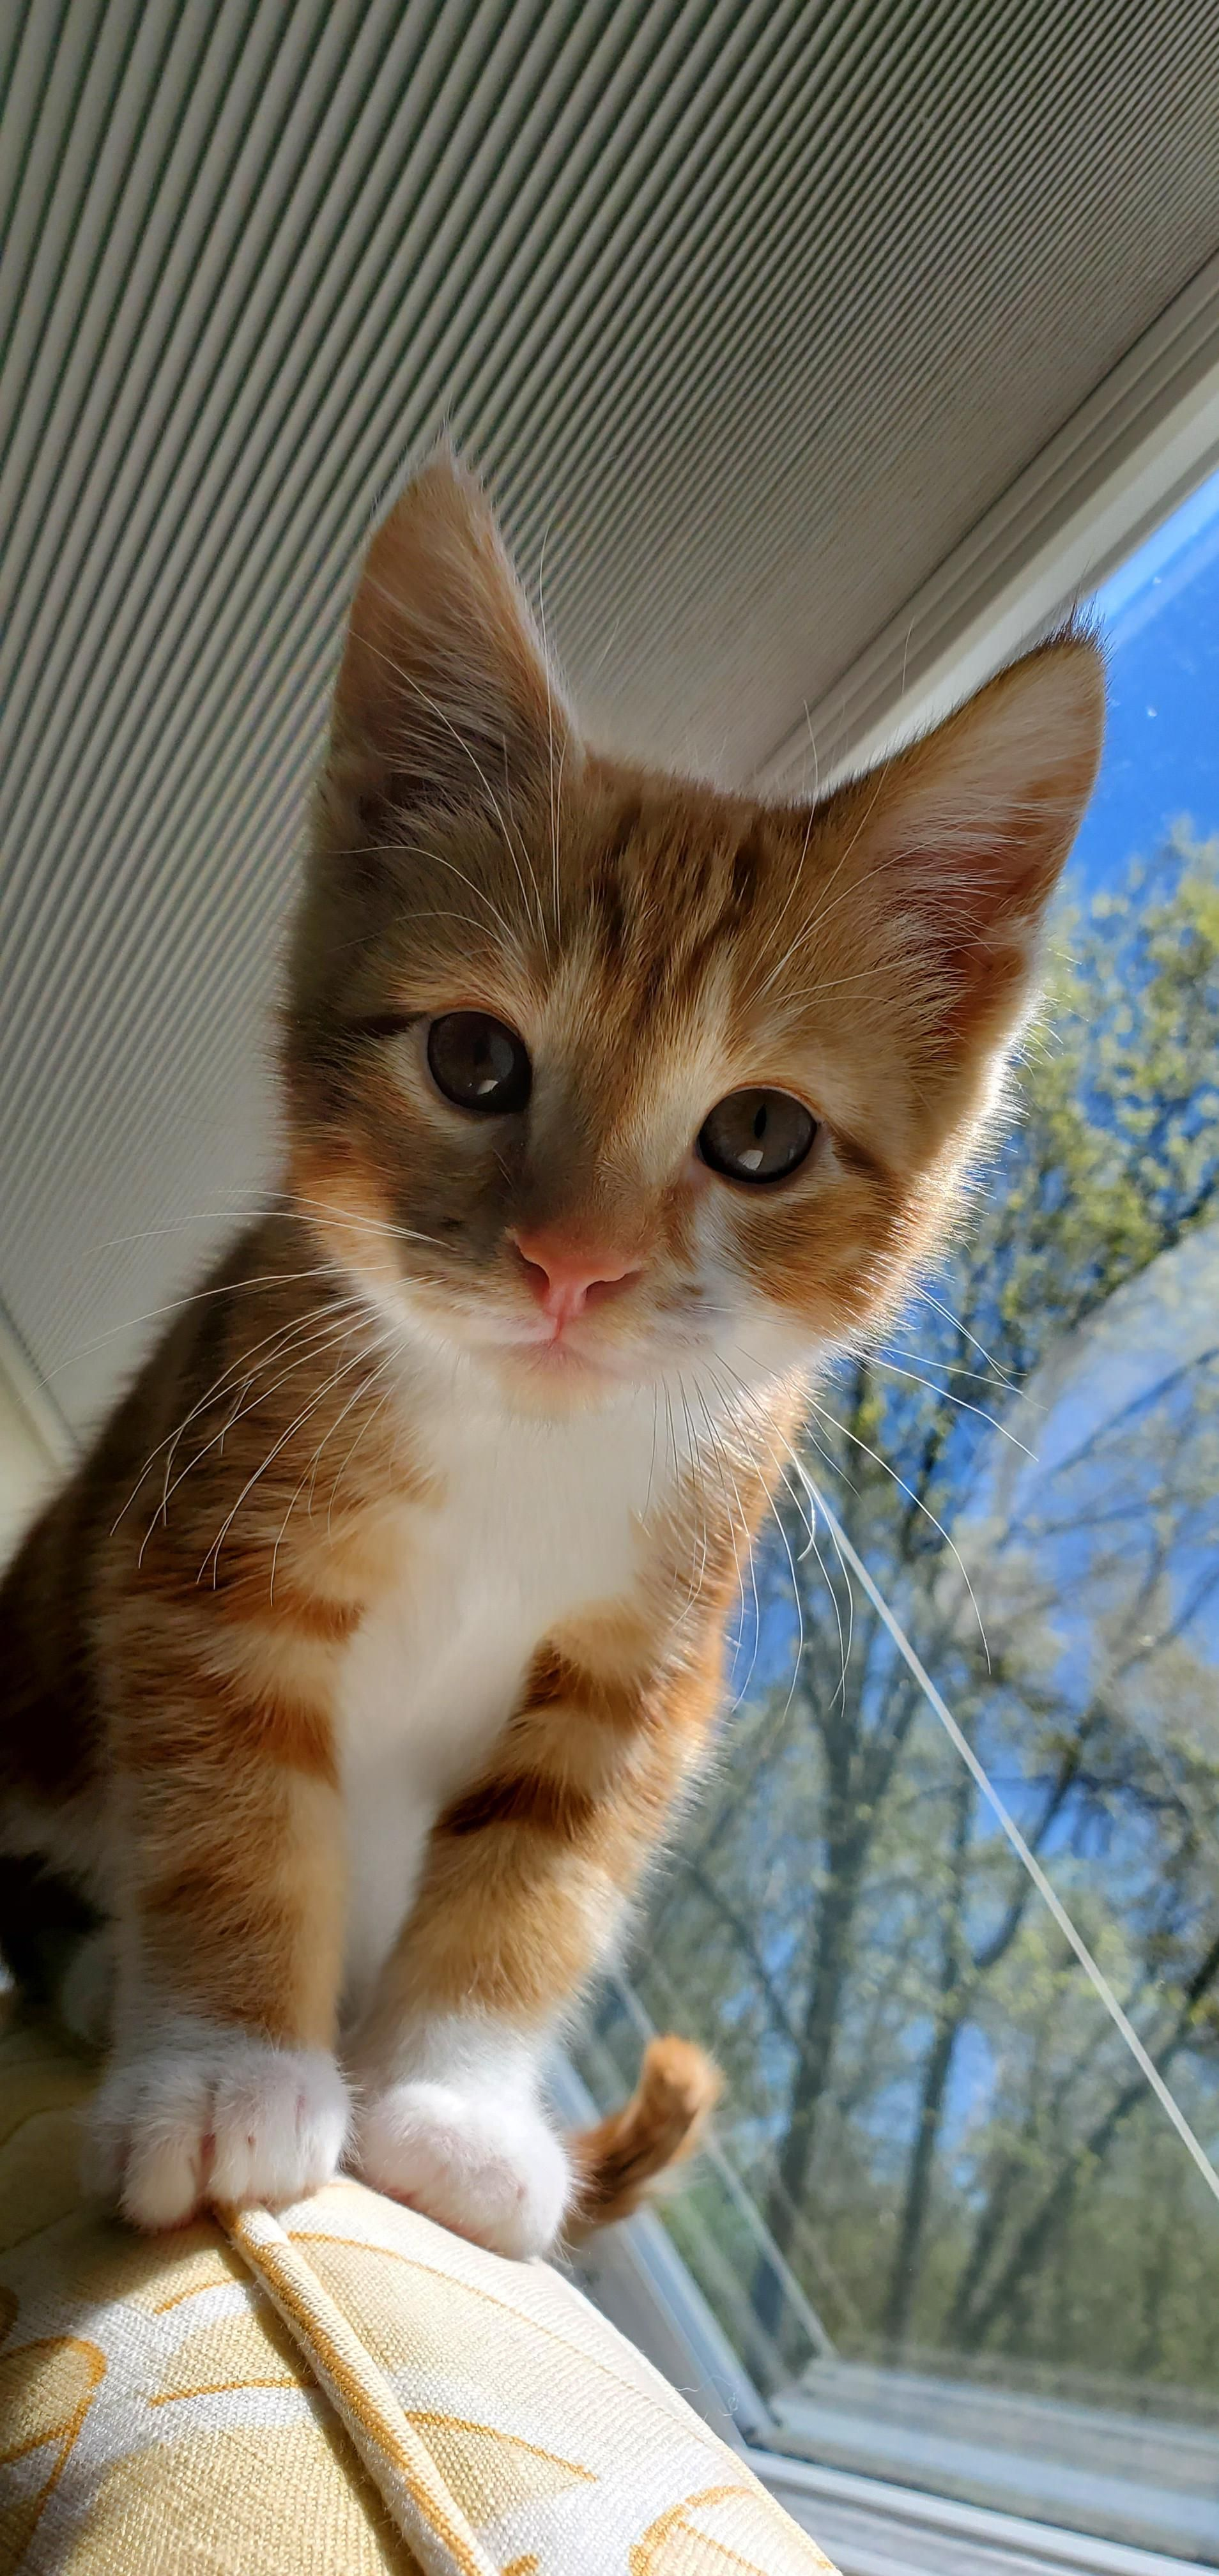 Real Estate Marketing Reviews My New Kitten His Name Is Goose In 2020 Cats Kitten Cat Post